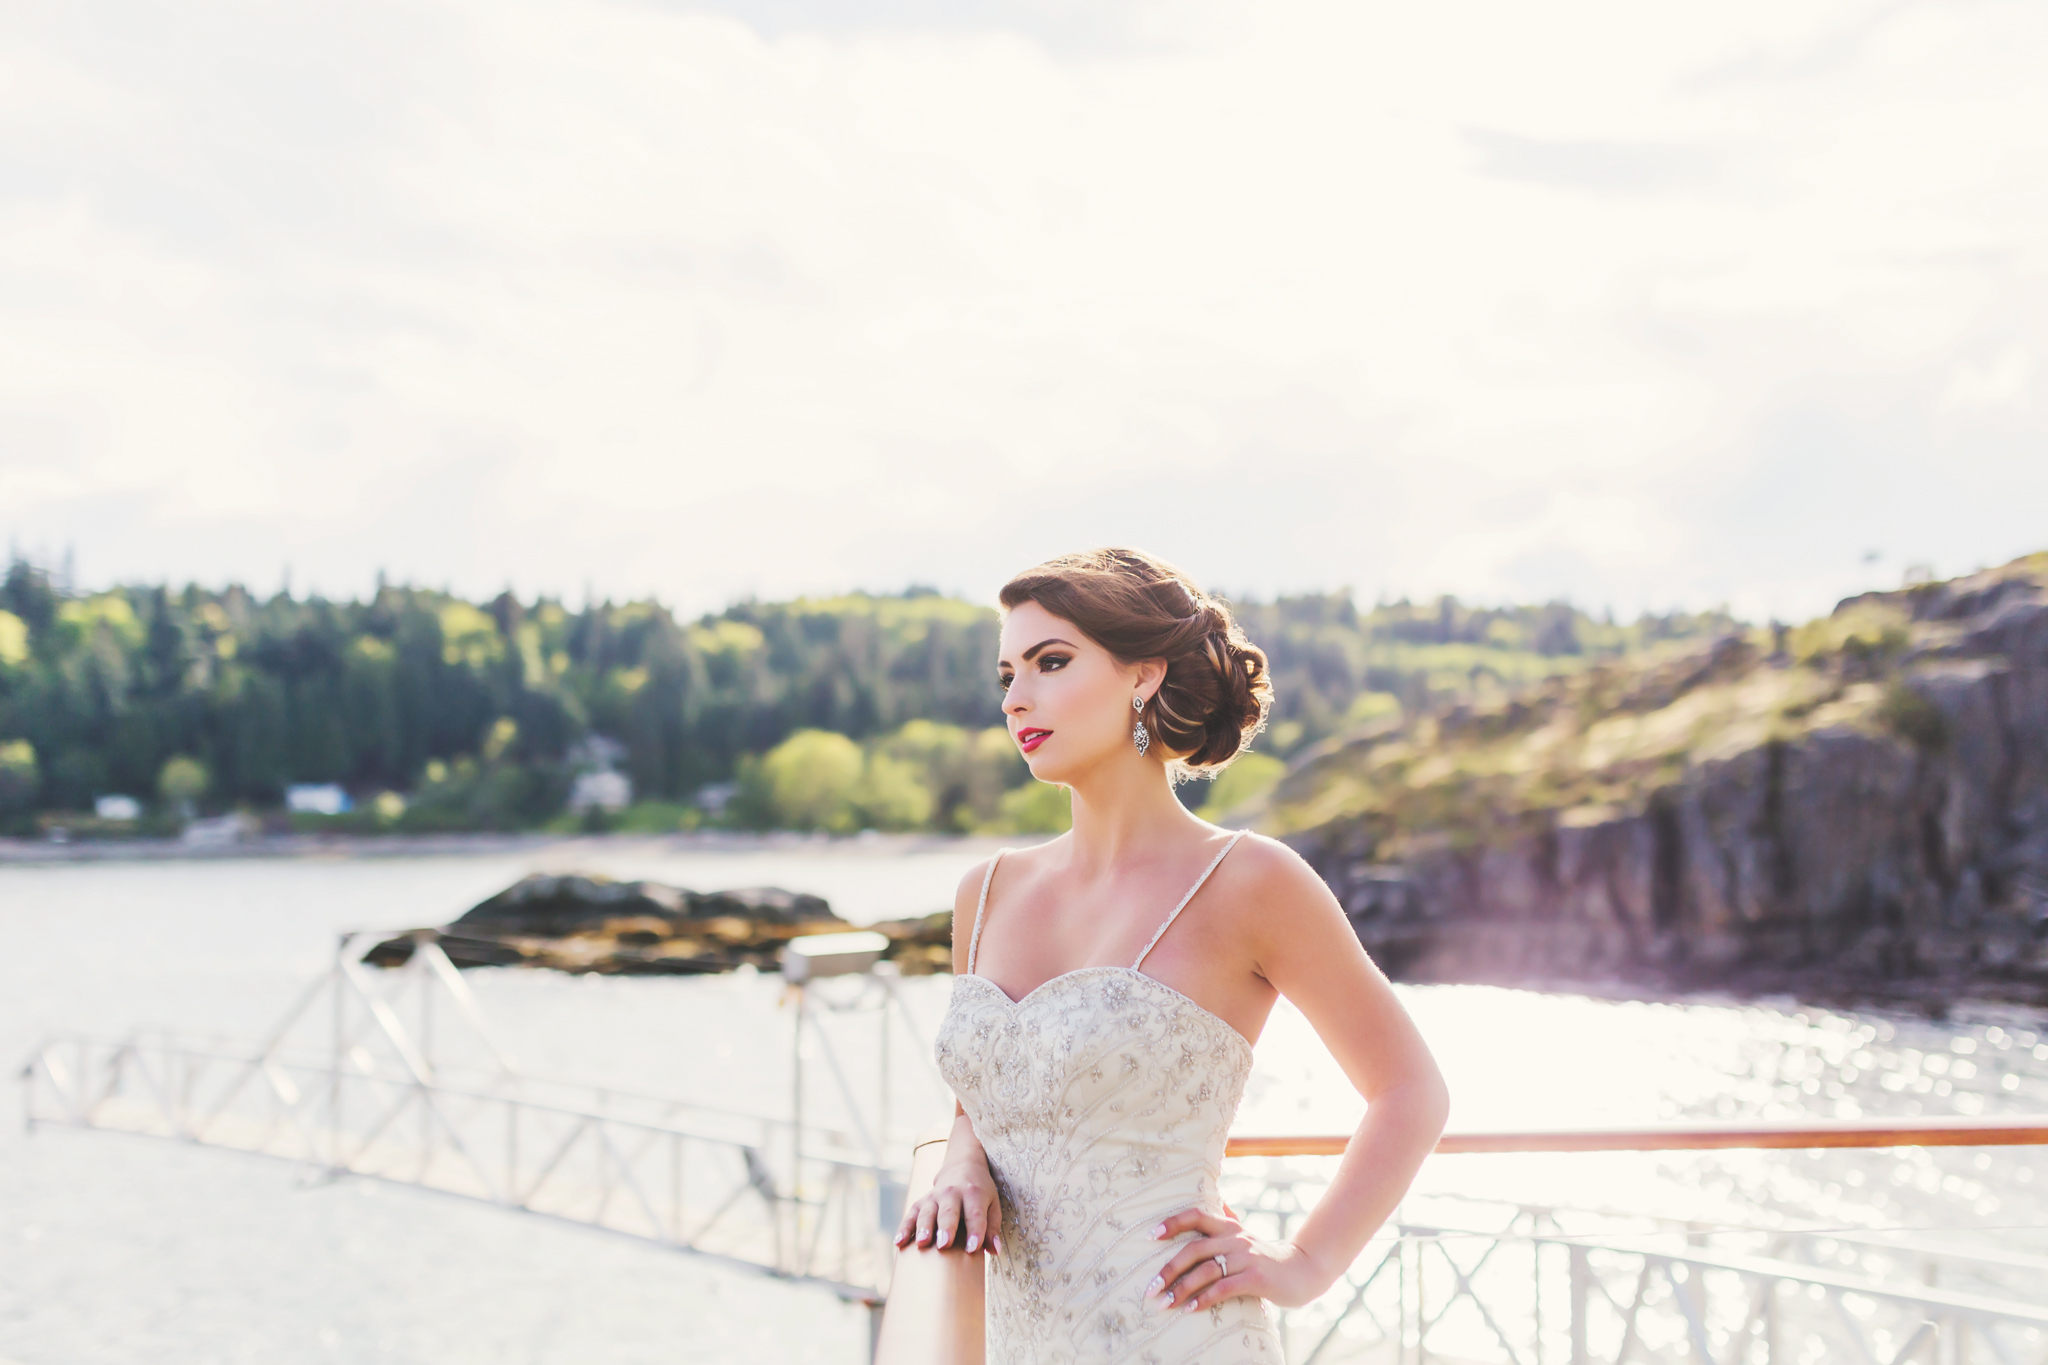 IMG_6605-BRIDAL-EDITORIAL-JENNIFER-PICARD-PHOTOGRAPHY-FINE-ART-WEDDINGS.jpg